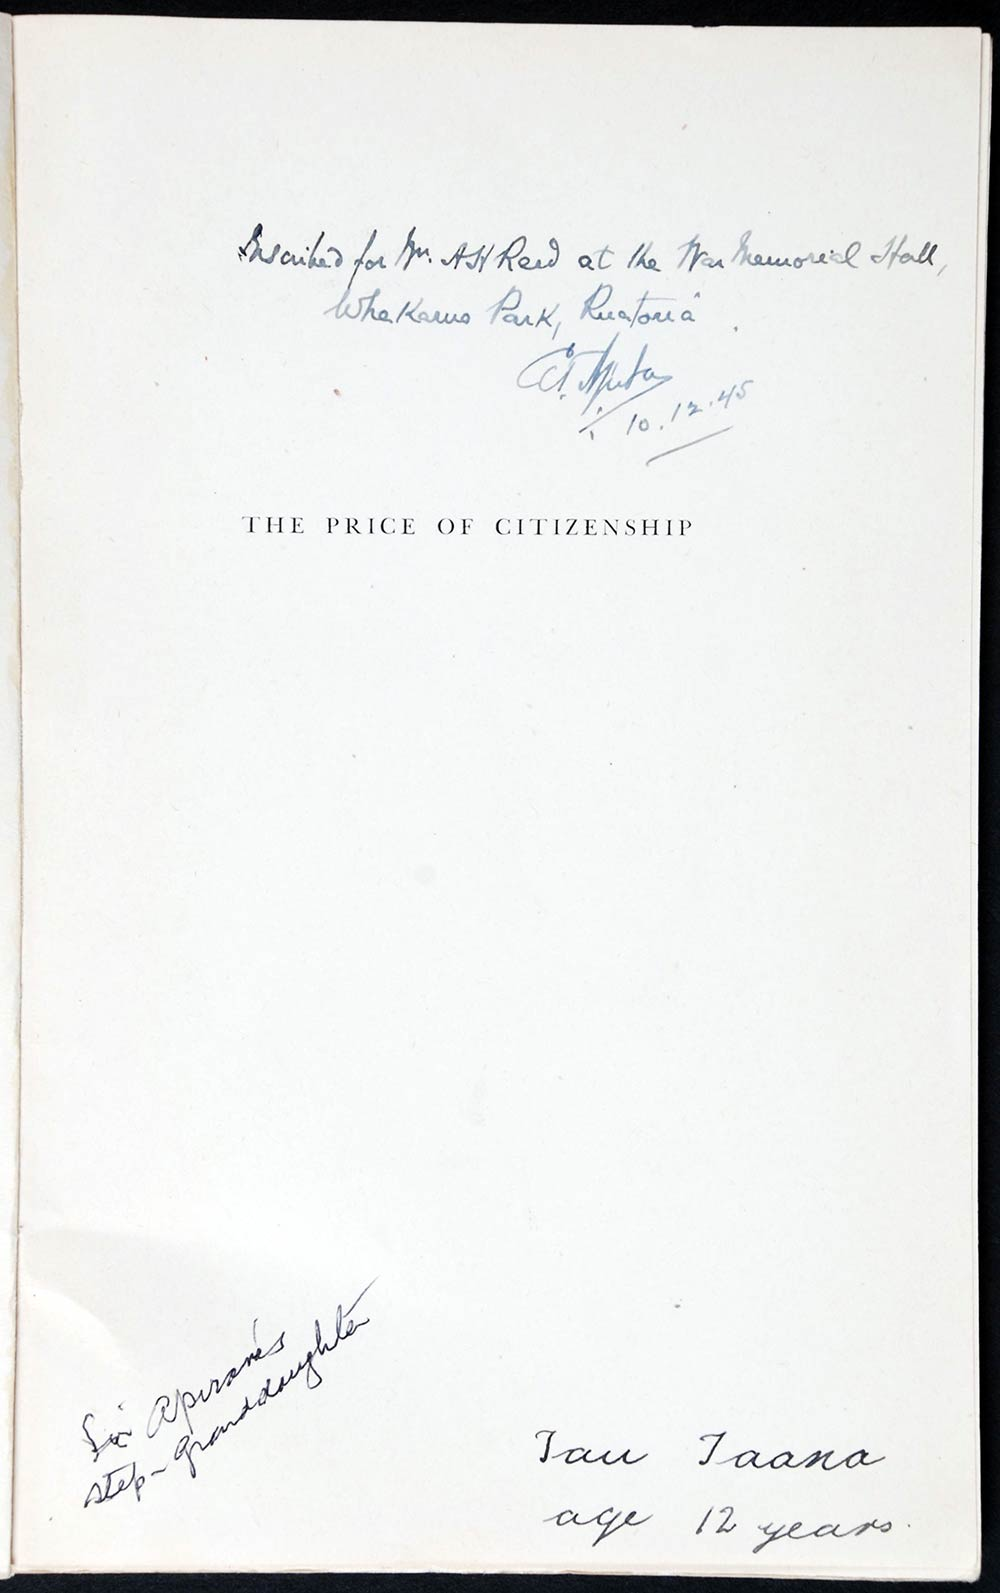 Sir Apirana Ngata. <em>The price of citizenship</em>. Wellington: Printed by W. & T., 1943.